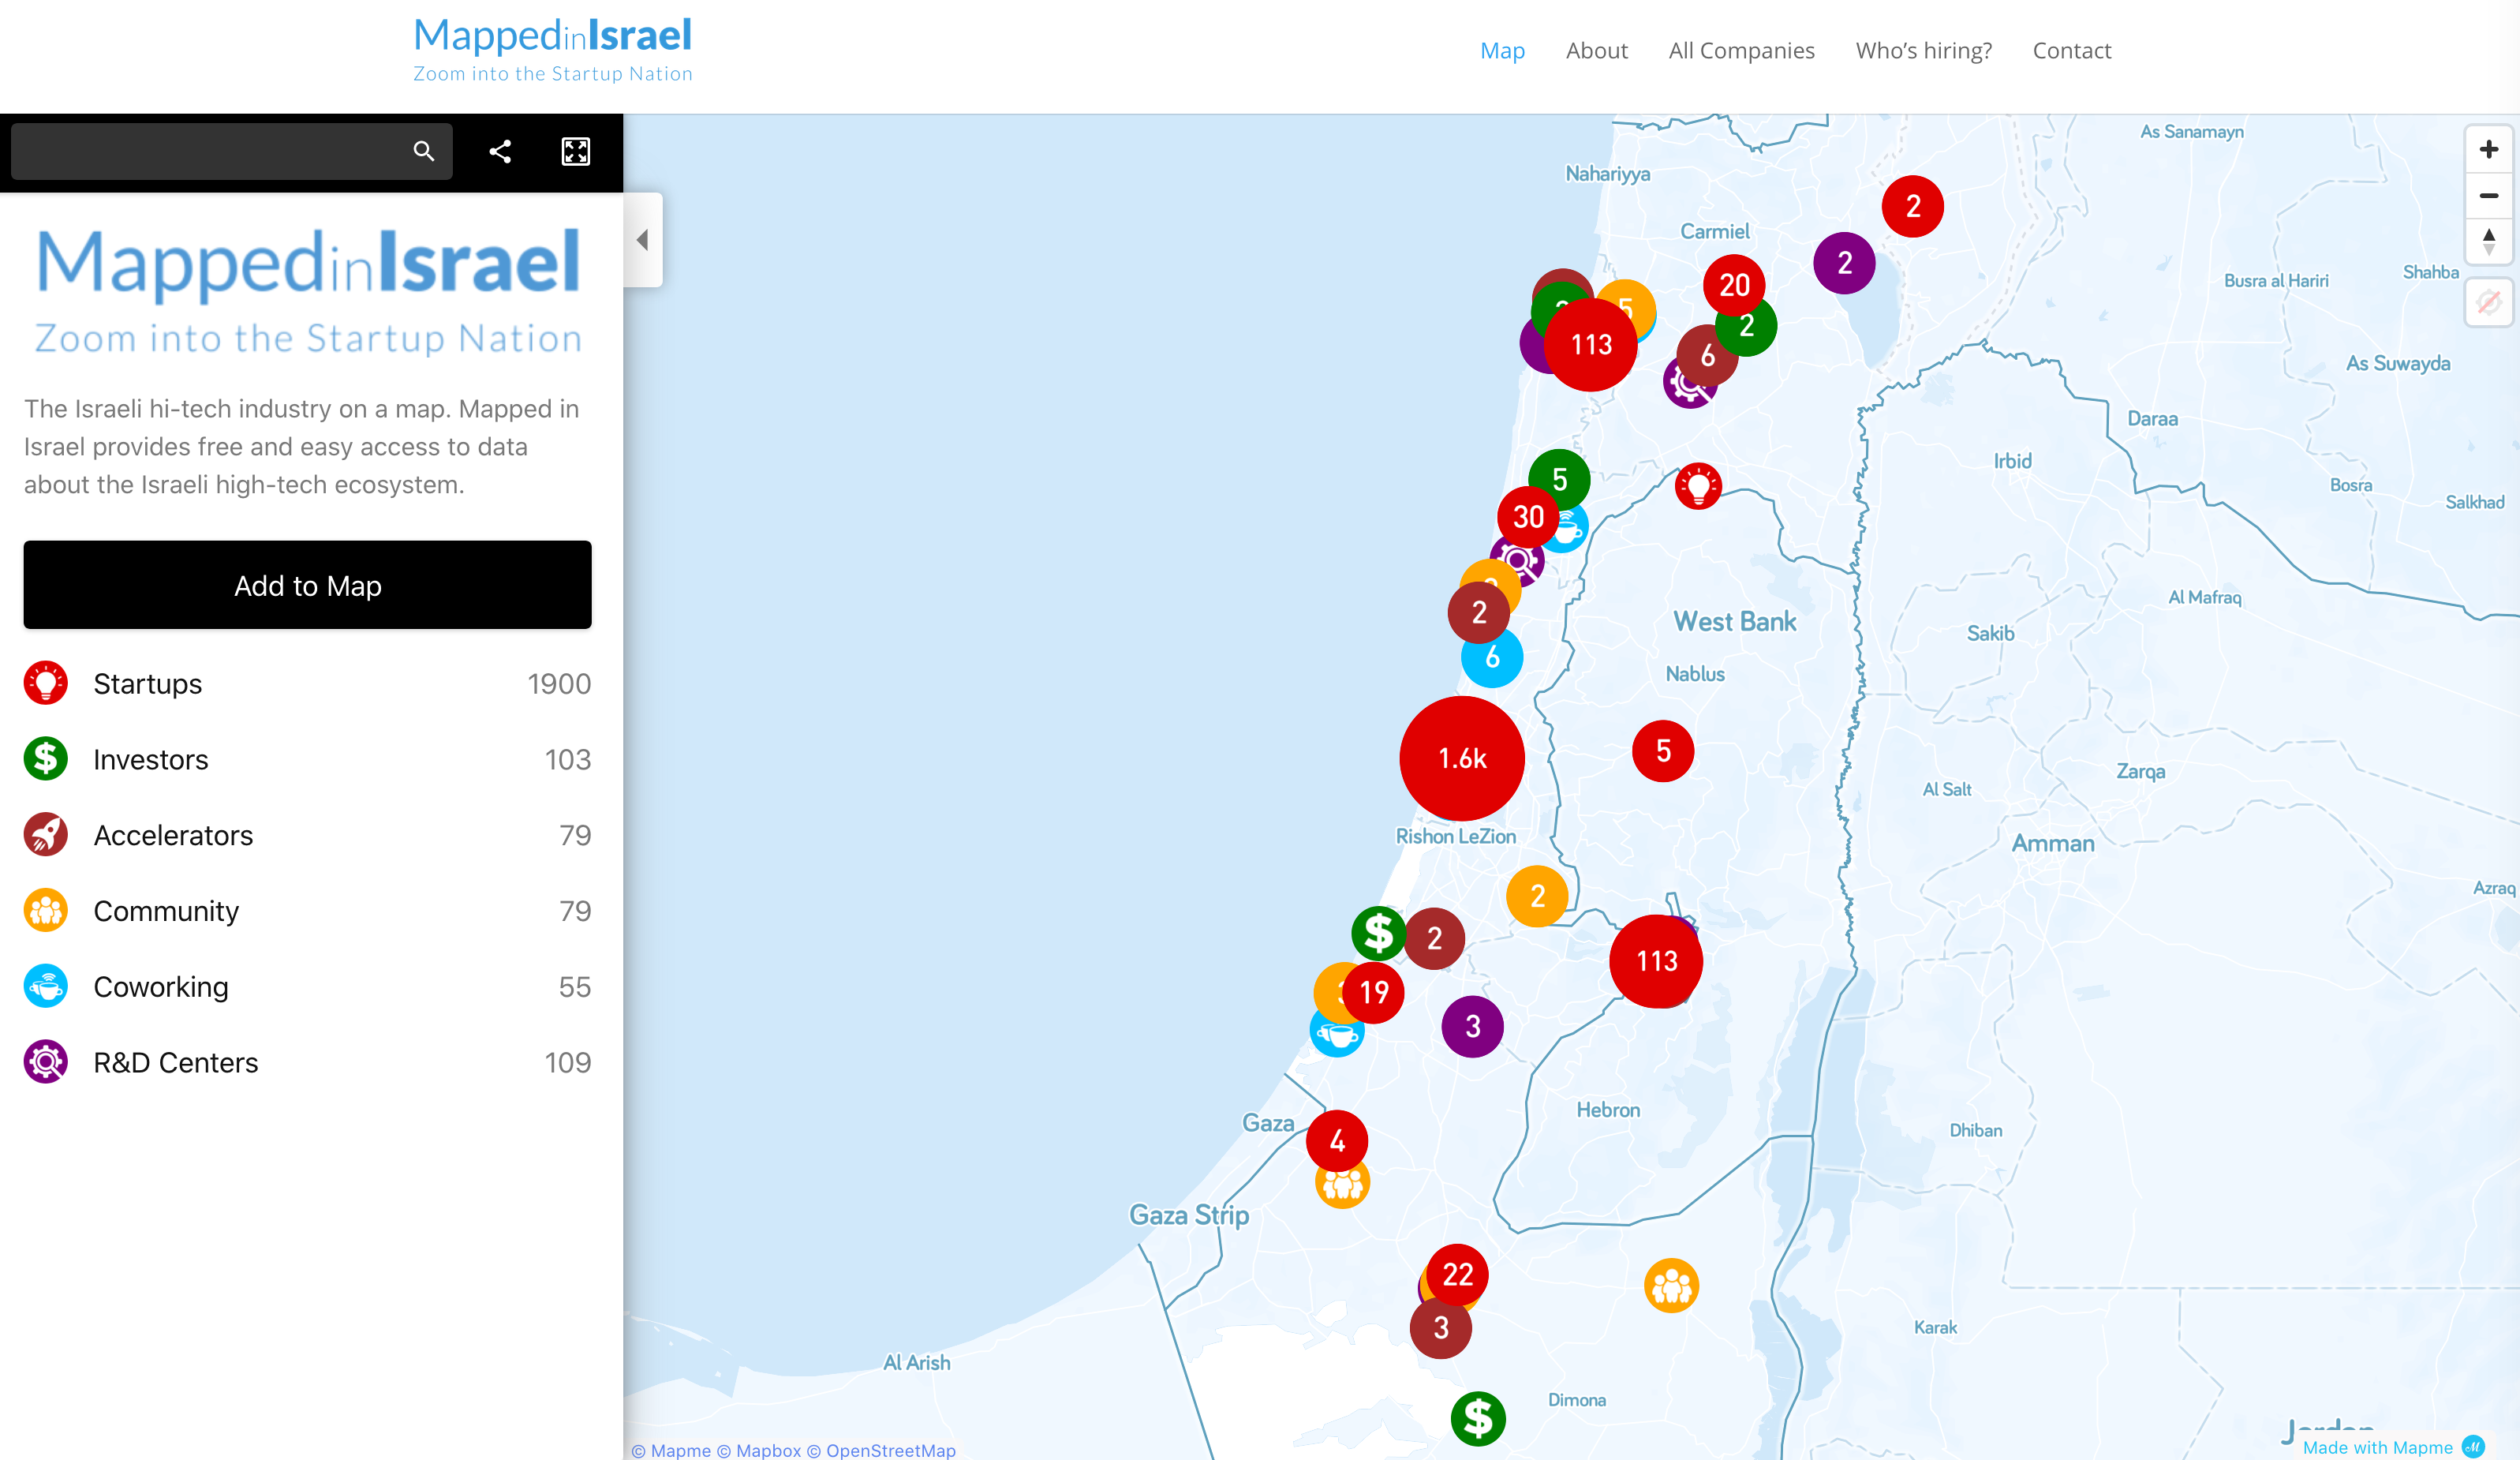 Israel Startup Map